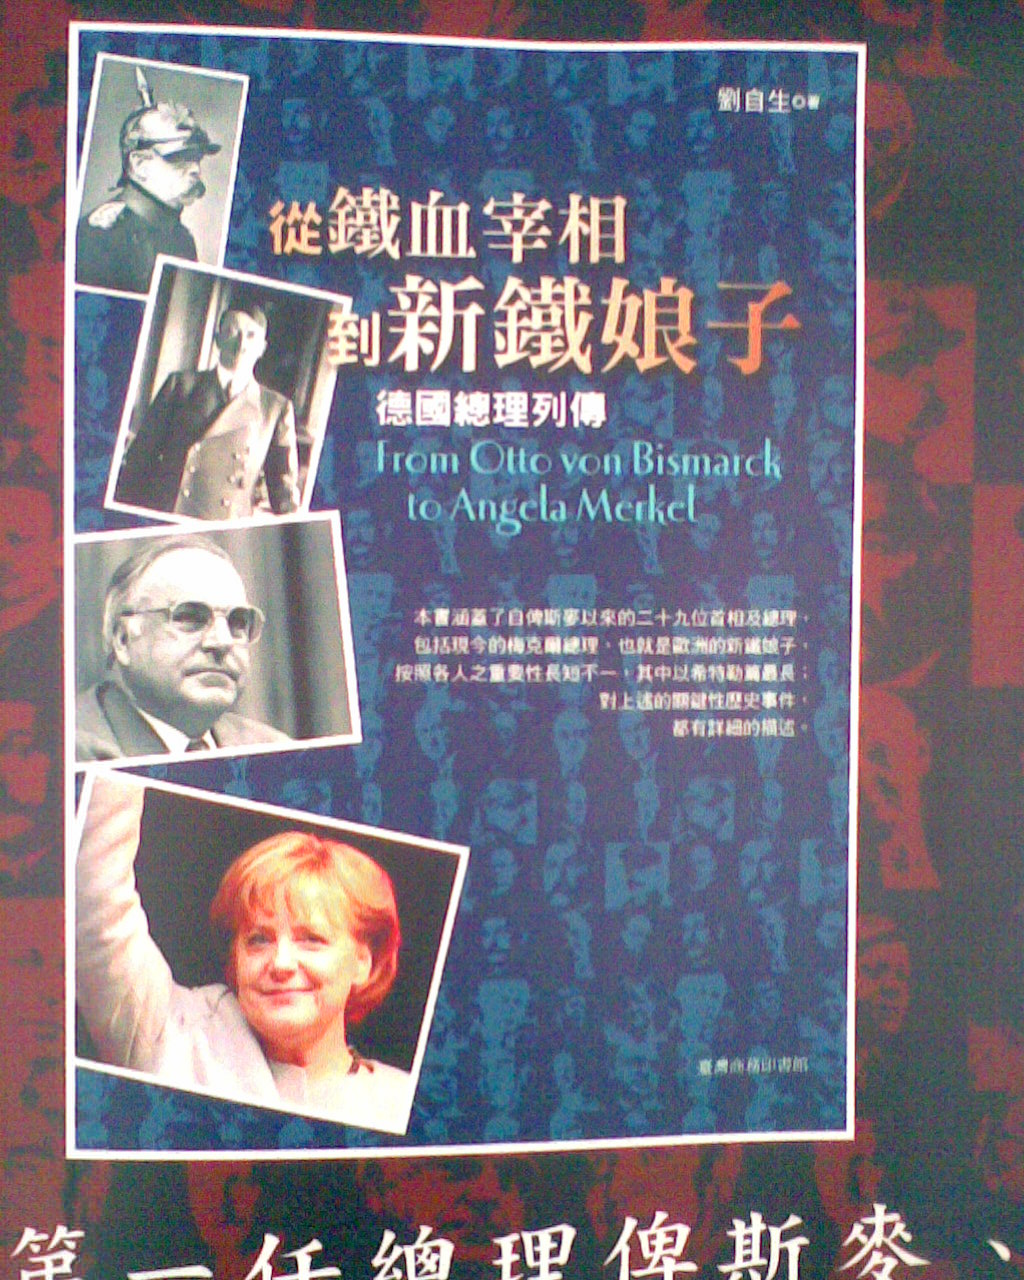 Chinese book German history